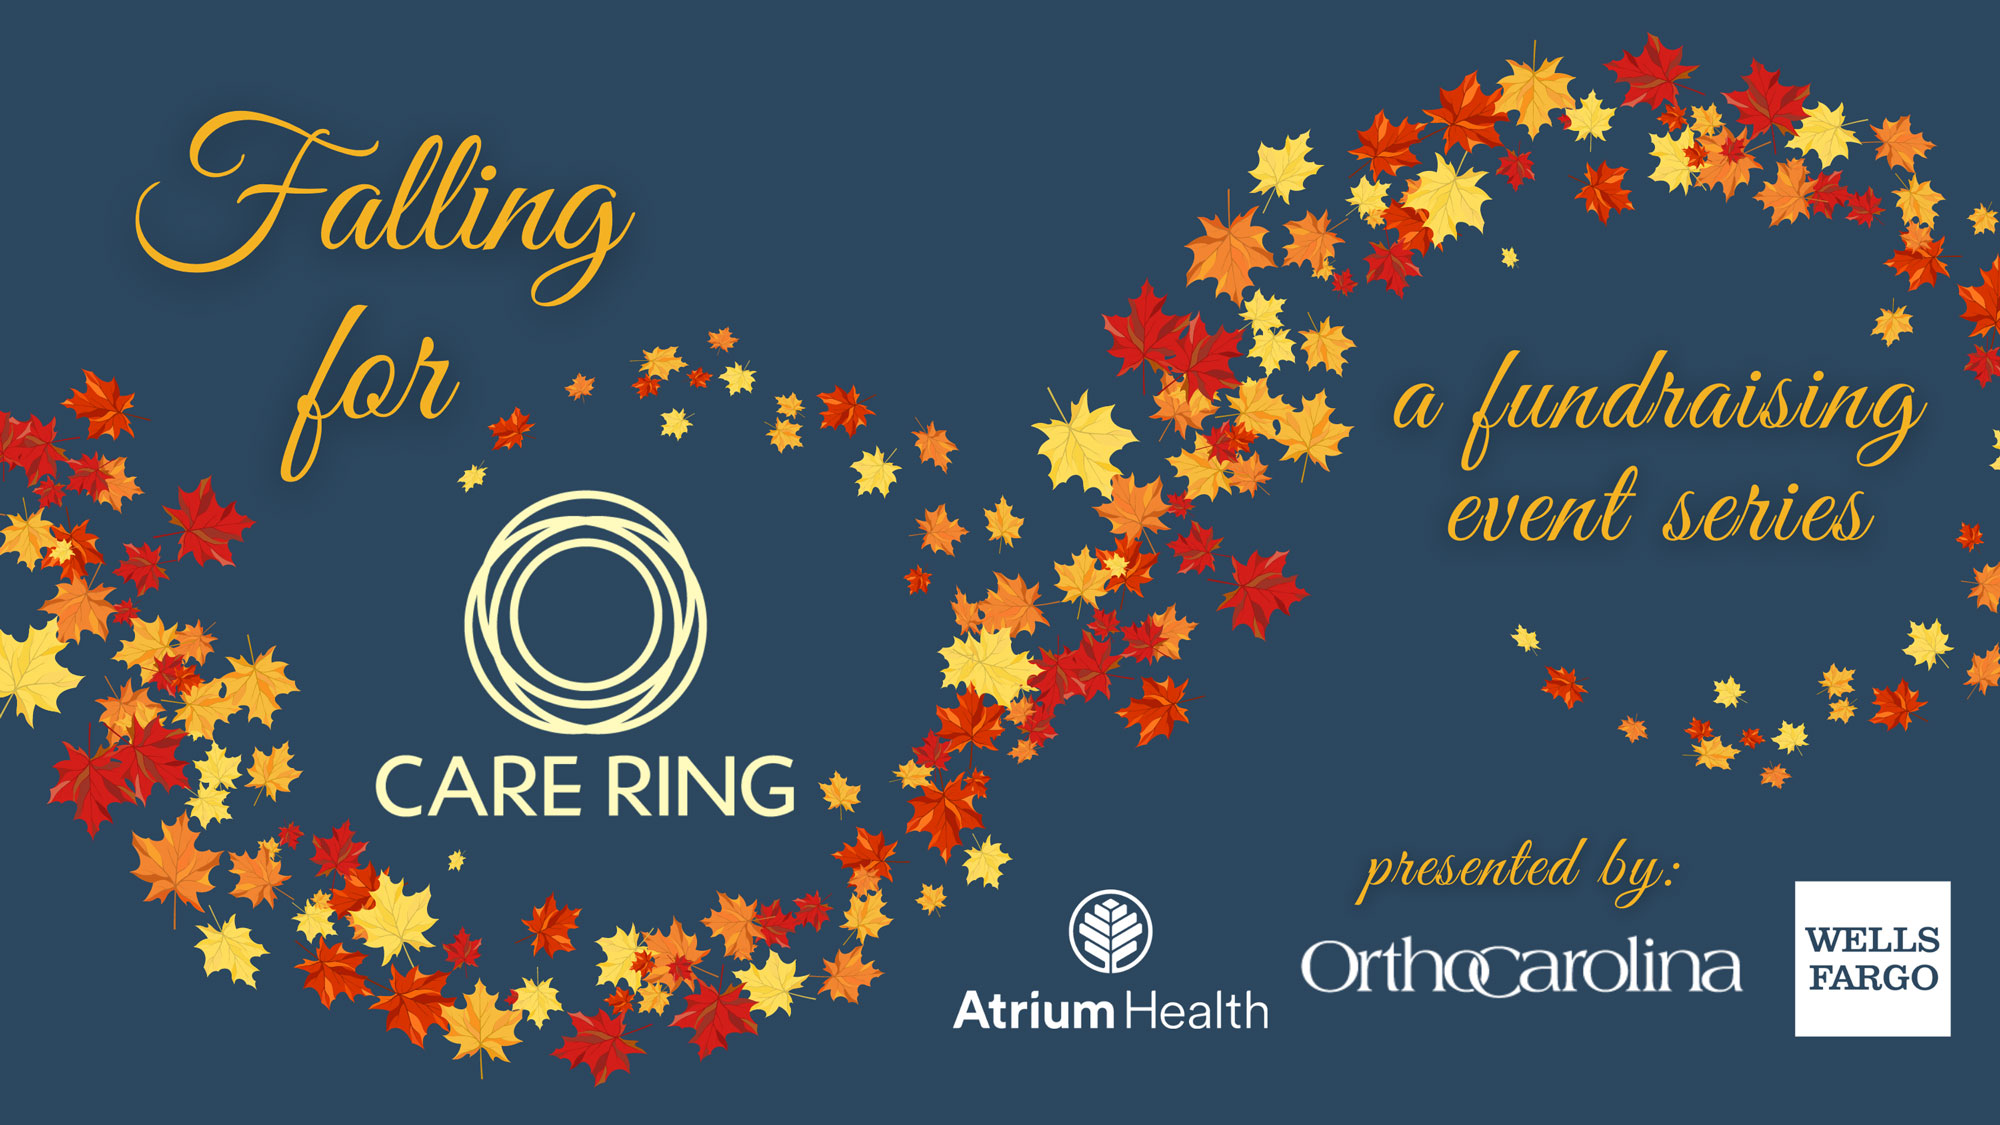 _Falling-for-Care-Ring-header-16x9-2000px